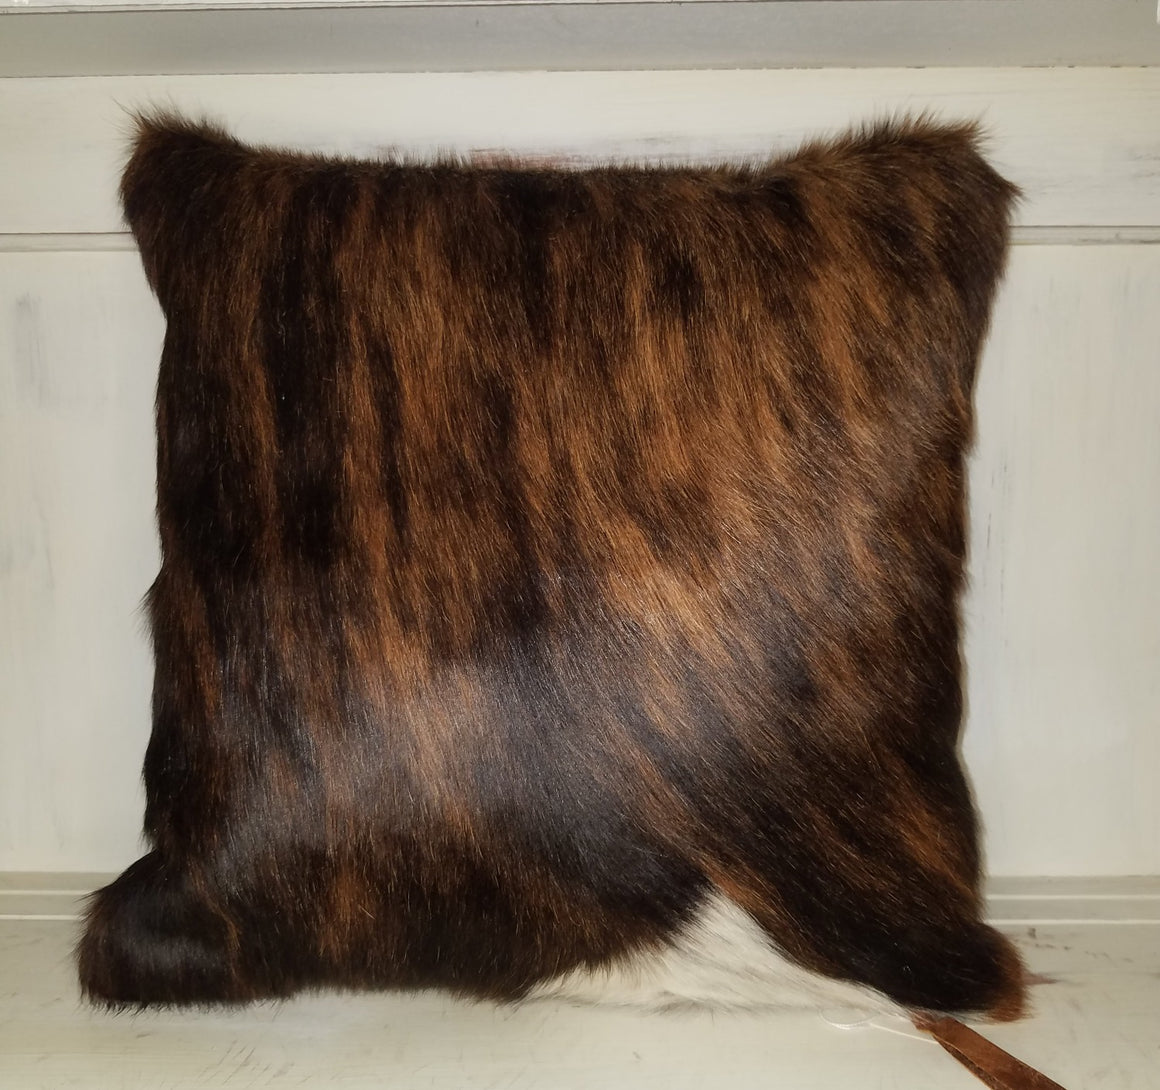 Pillow, Hair on Brown and White 004